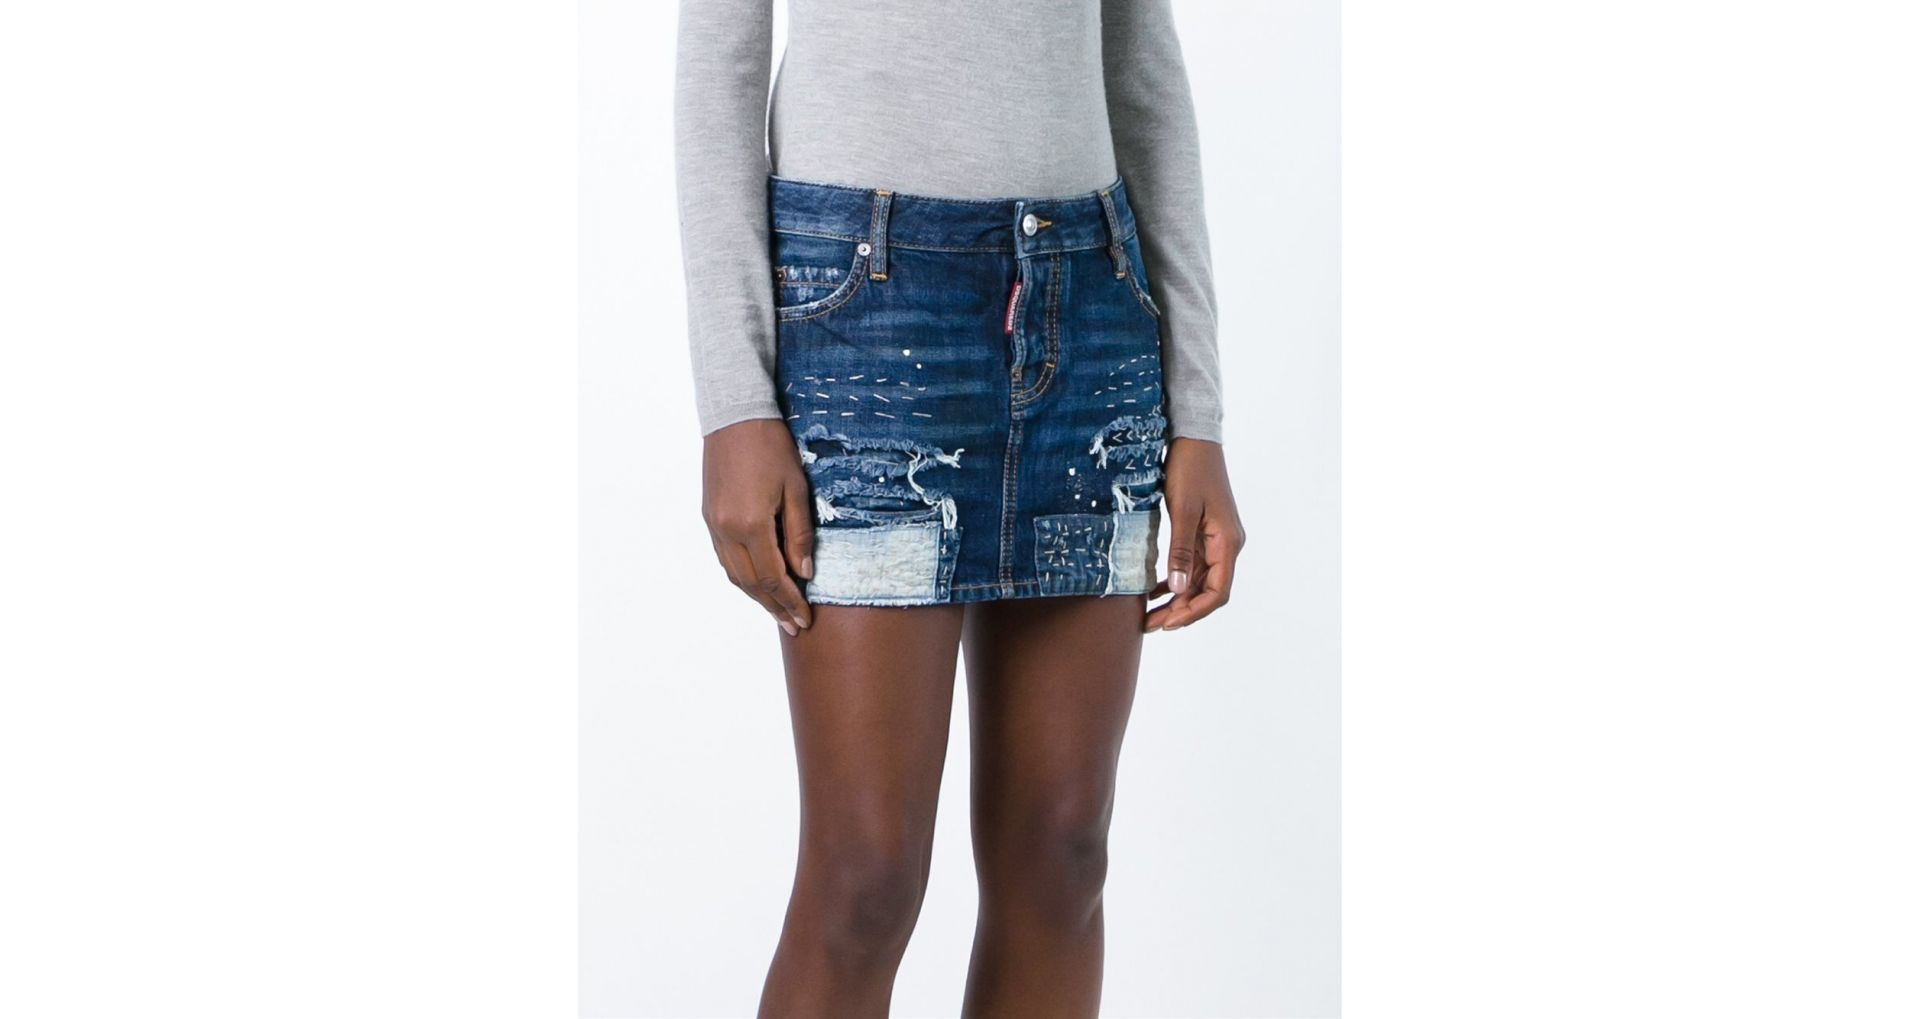 Skirts for ladies made from denim, leather, polyester